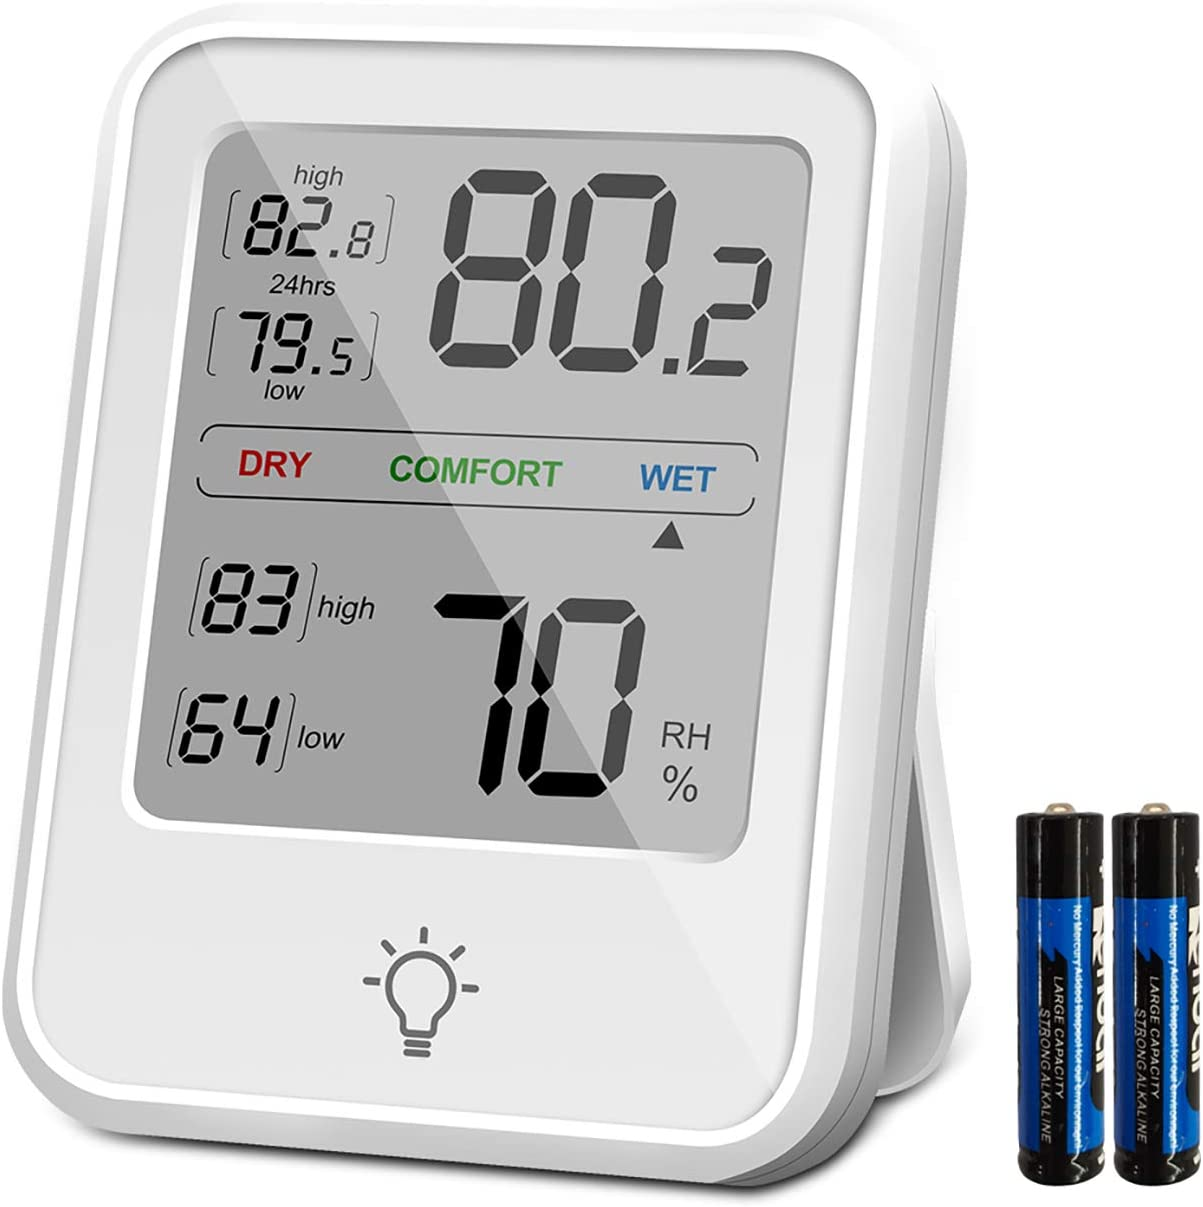 HyFo Green Digital Thermoeter Hygrometer, Thermometer Humidity Accurate Temperature Humidity Backlight Moniotor Meter for Home, Office and Greenhouse, Indoor Garden, Battery Included